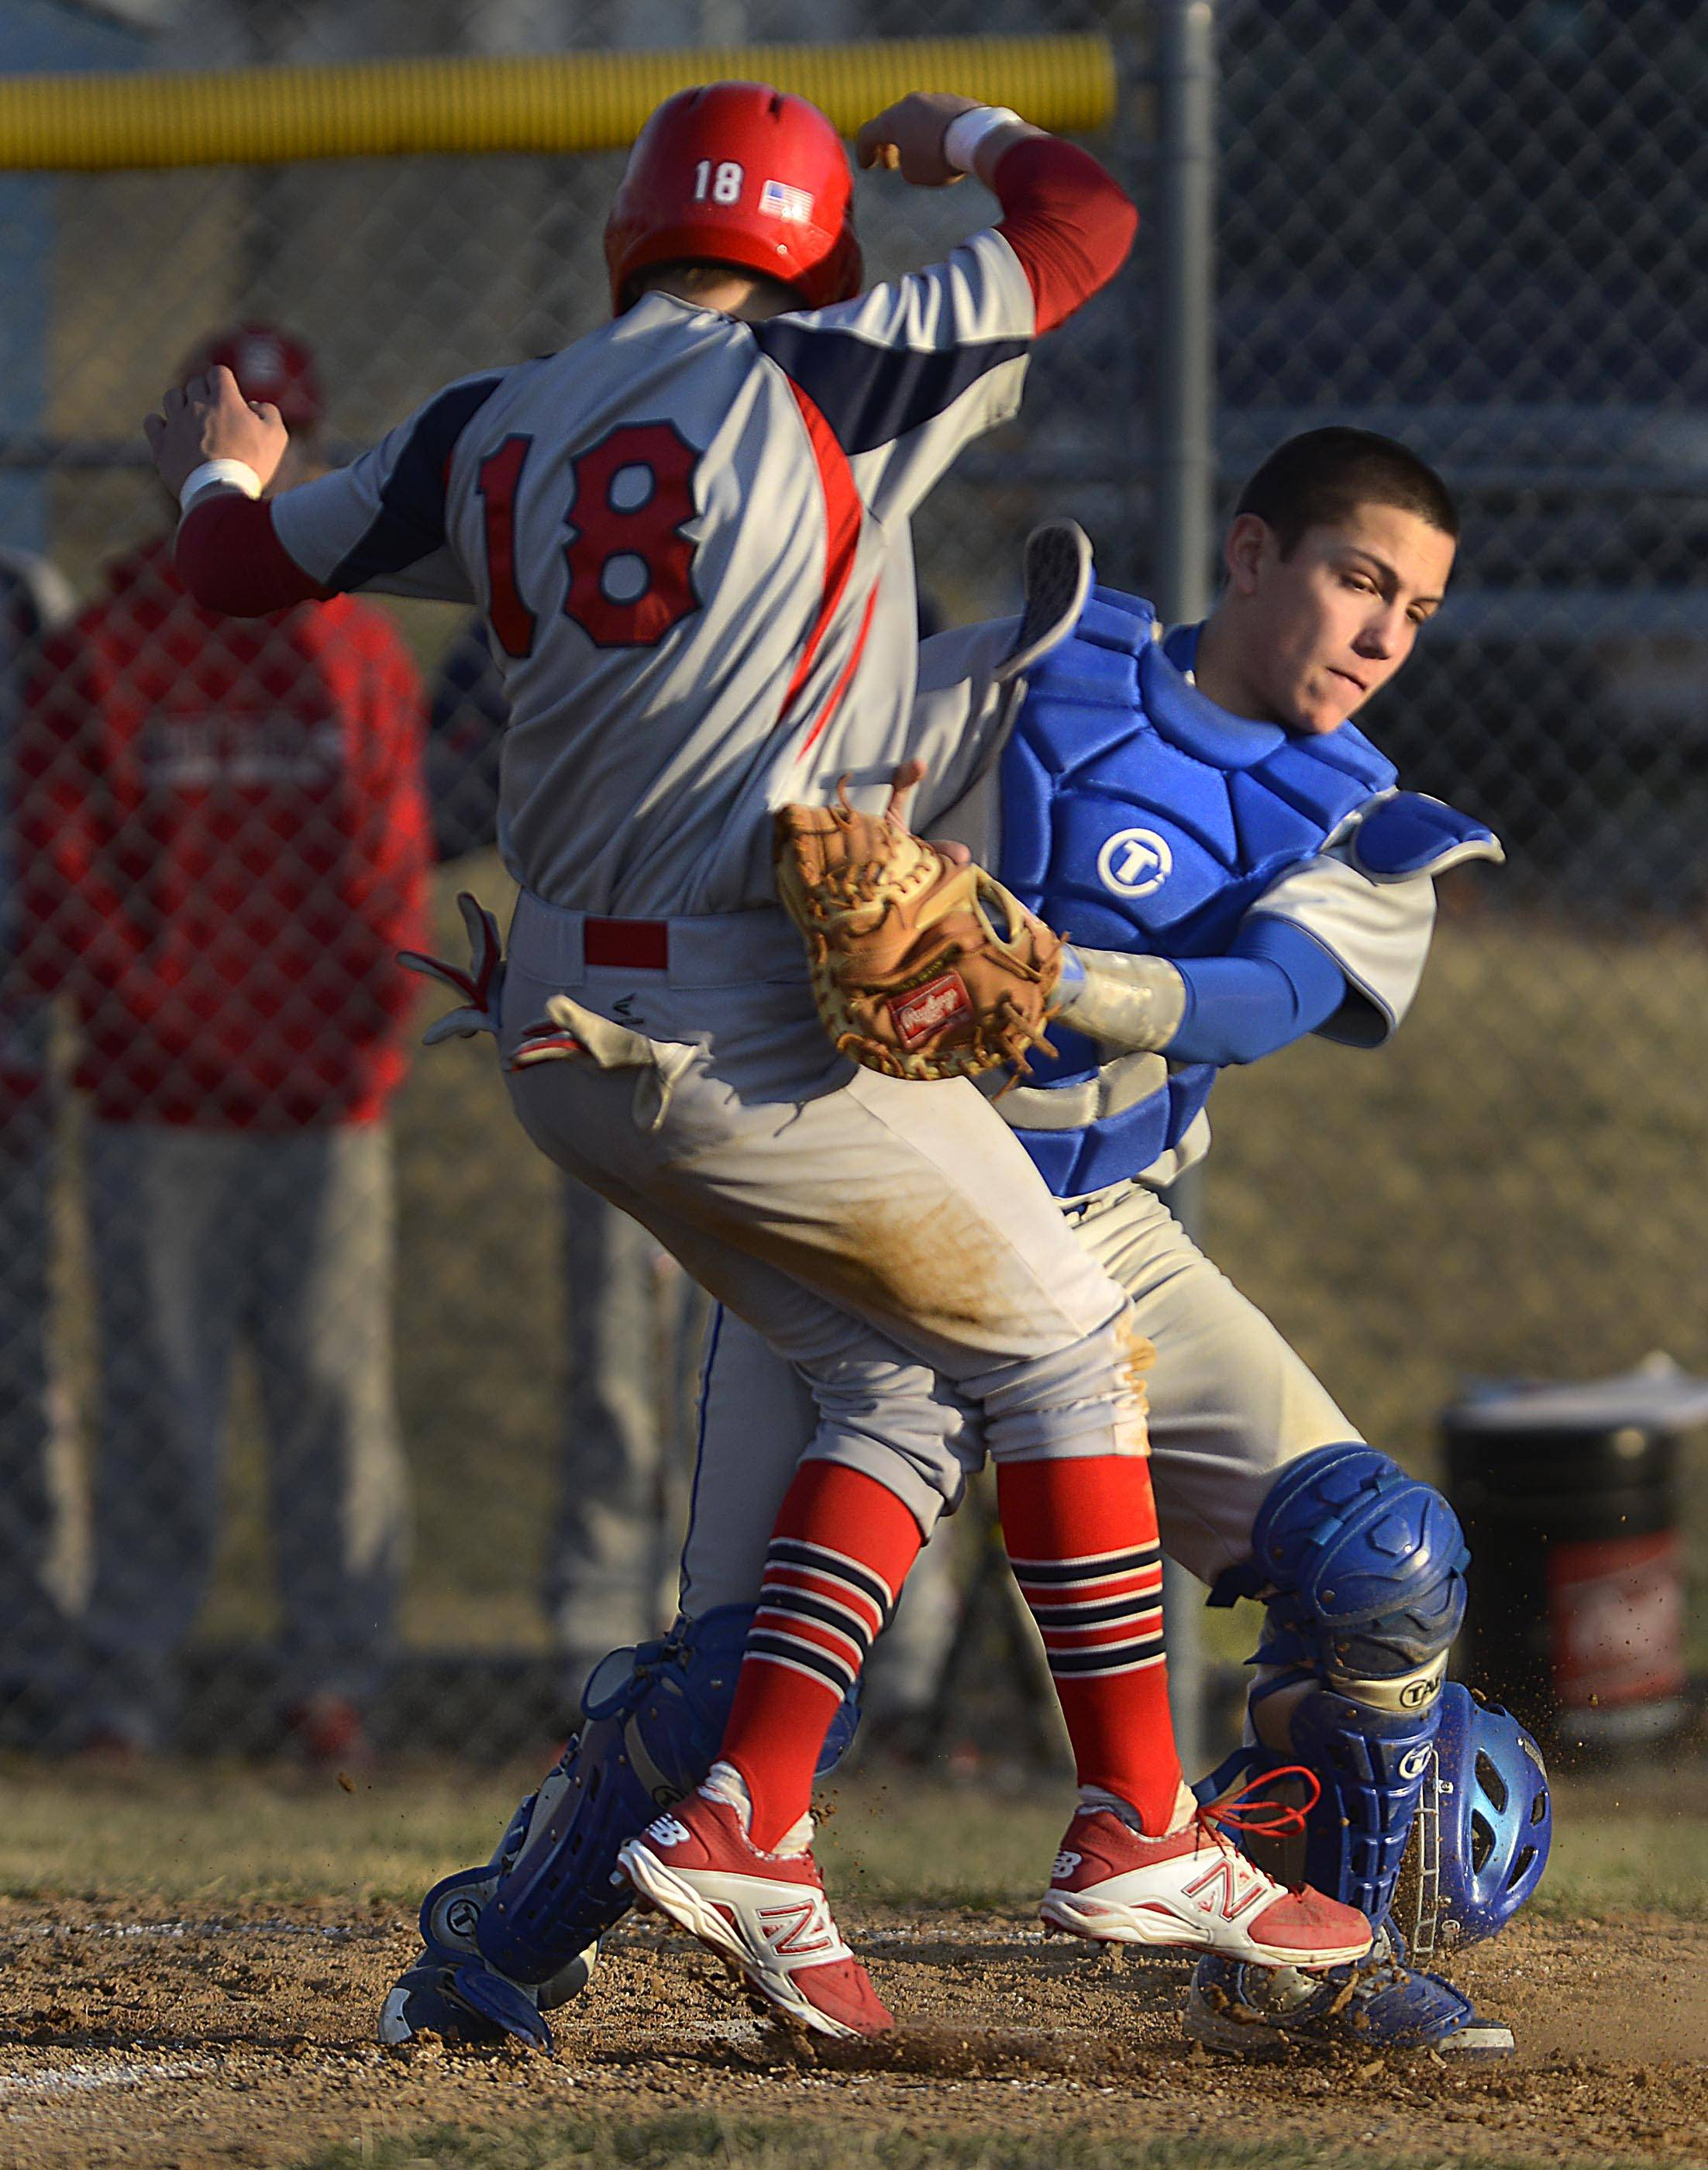 Larkin catcher Dan Lenz tags South Elgin's Nick Menken at the plate on a throw from left fielder Robert Bond for the third out of the seventh inning Tuesday in Elgin.